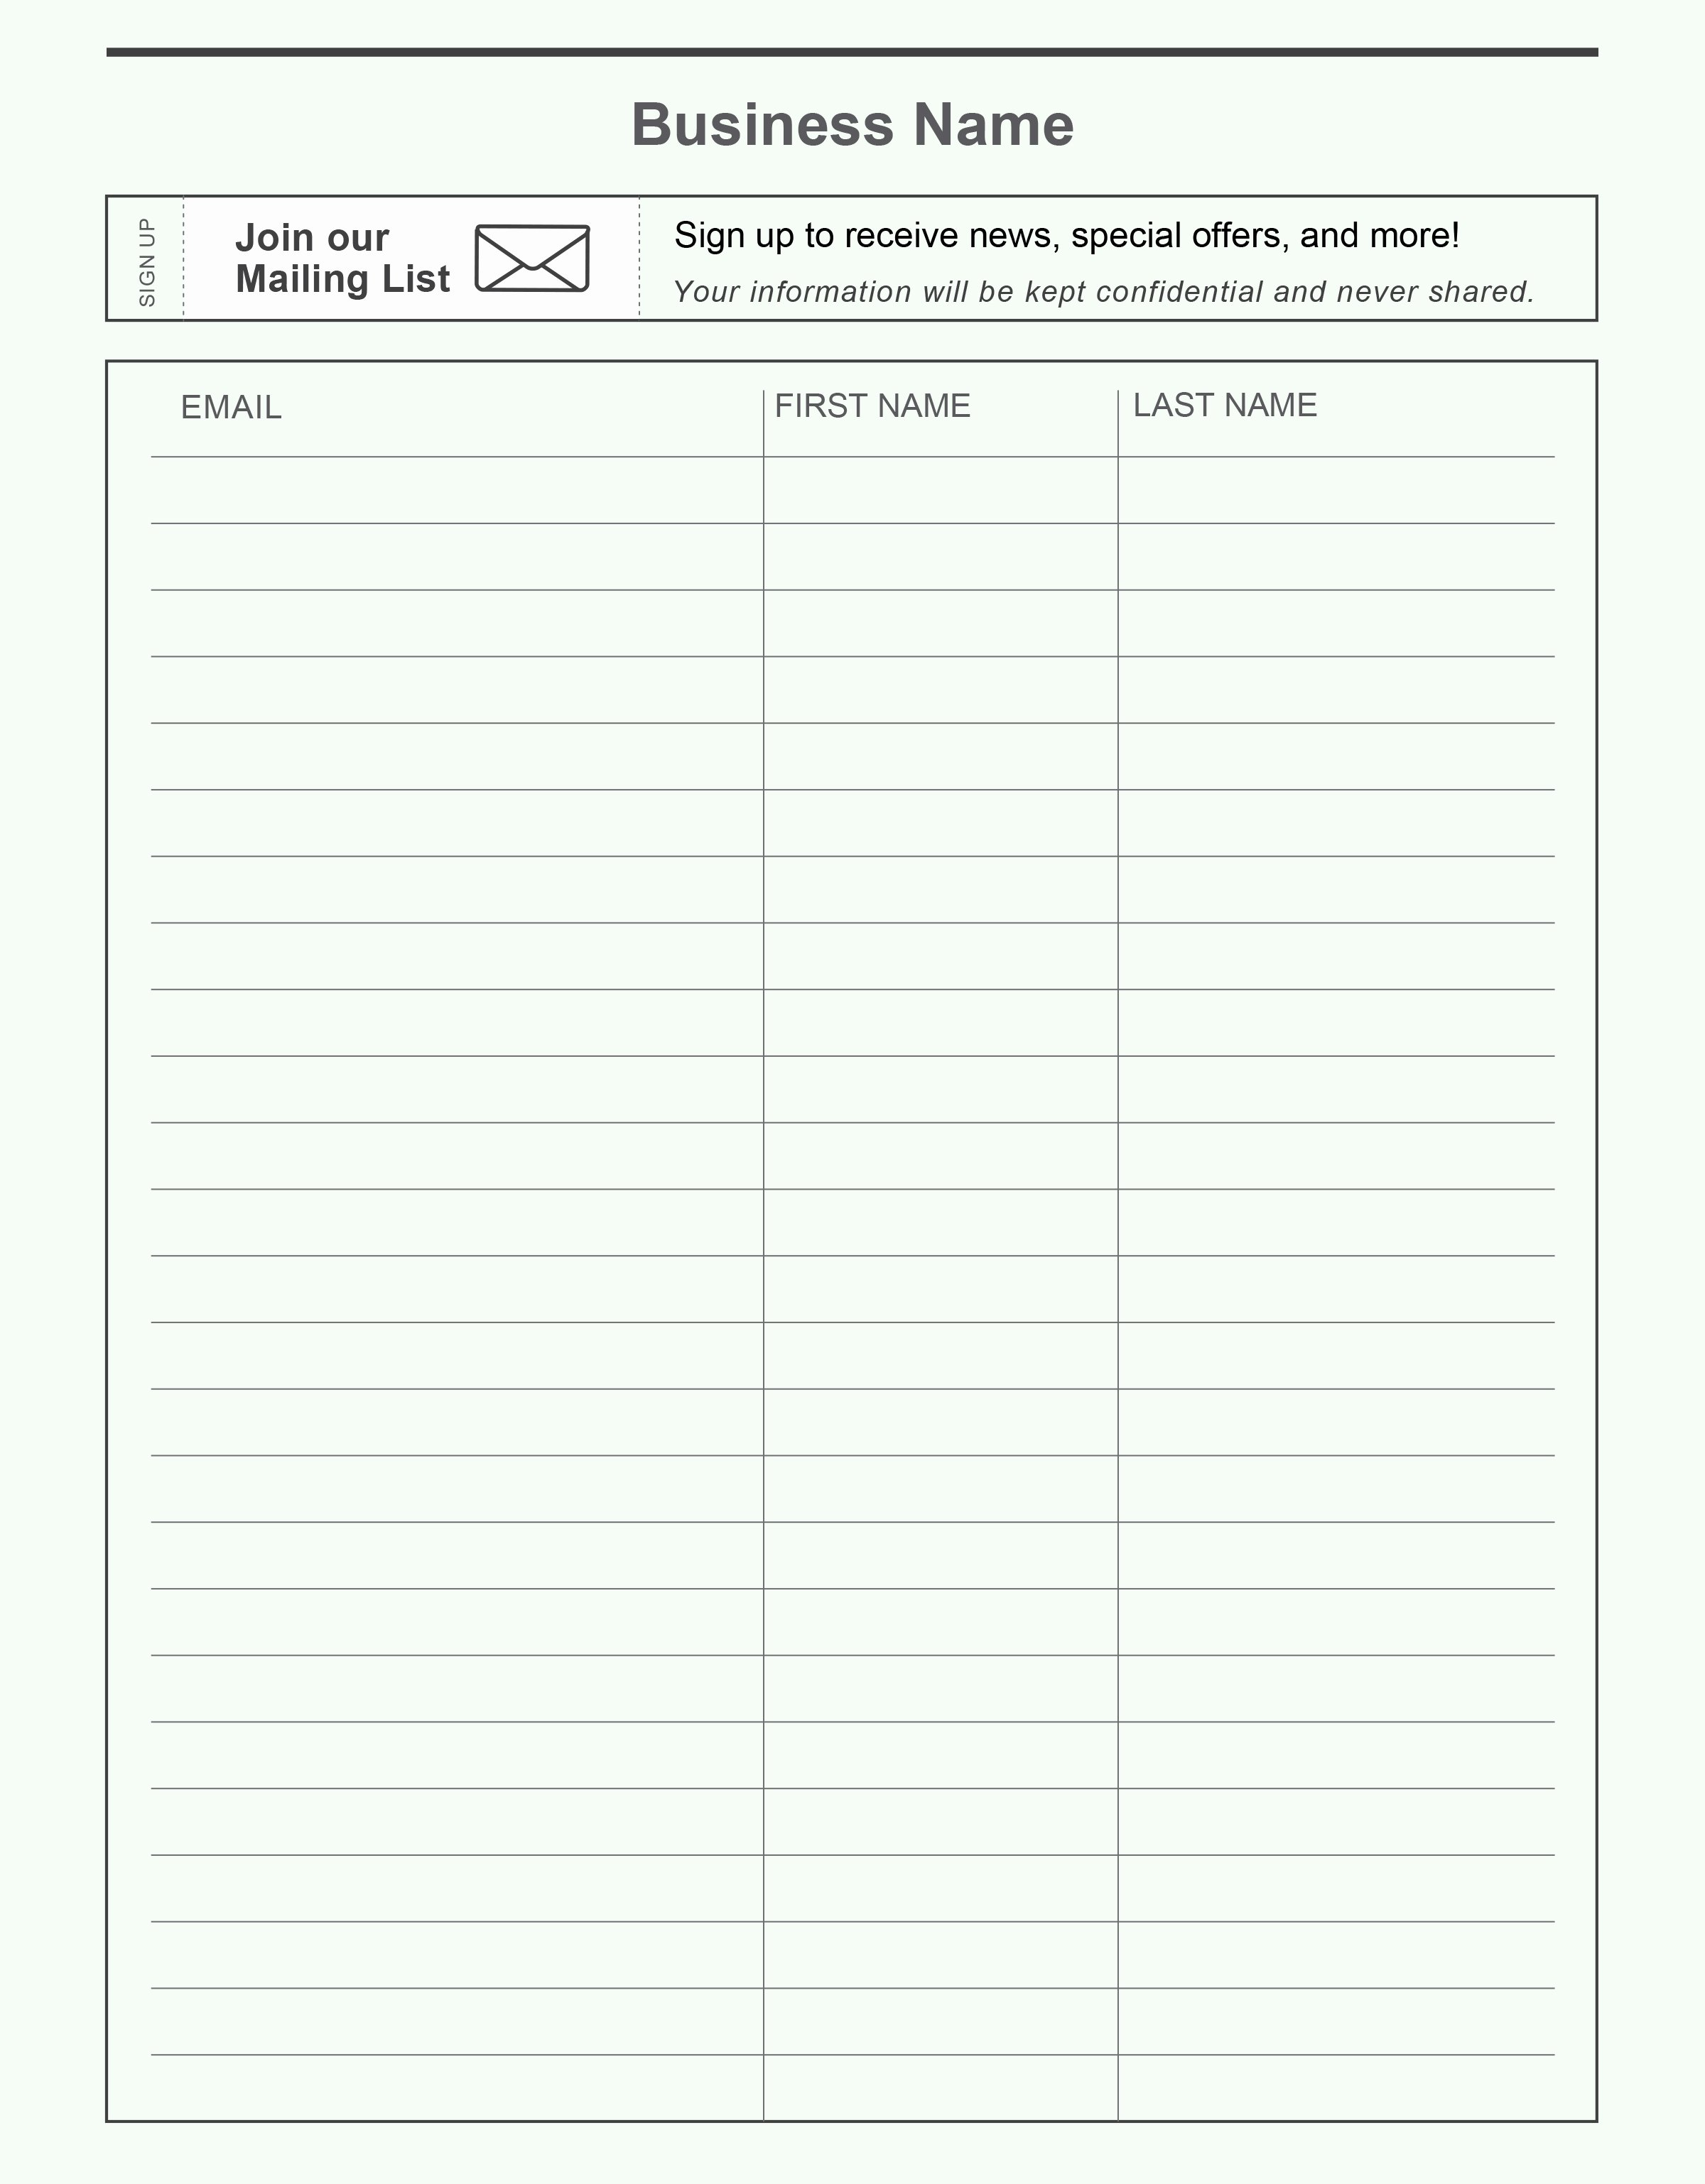 Email Signup Sheet Template Fresh Name and Email Sign Up Sheet Portablegasgrillweber